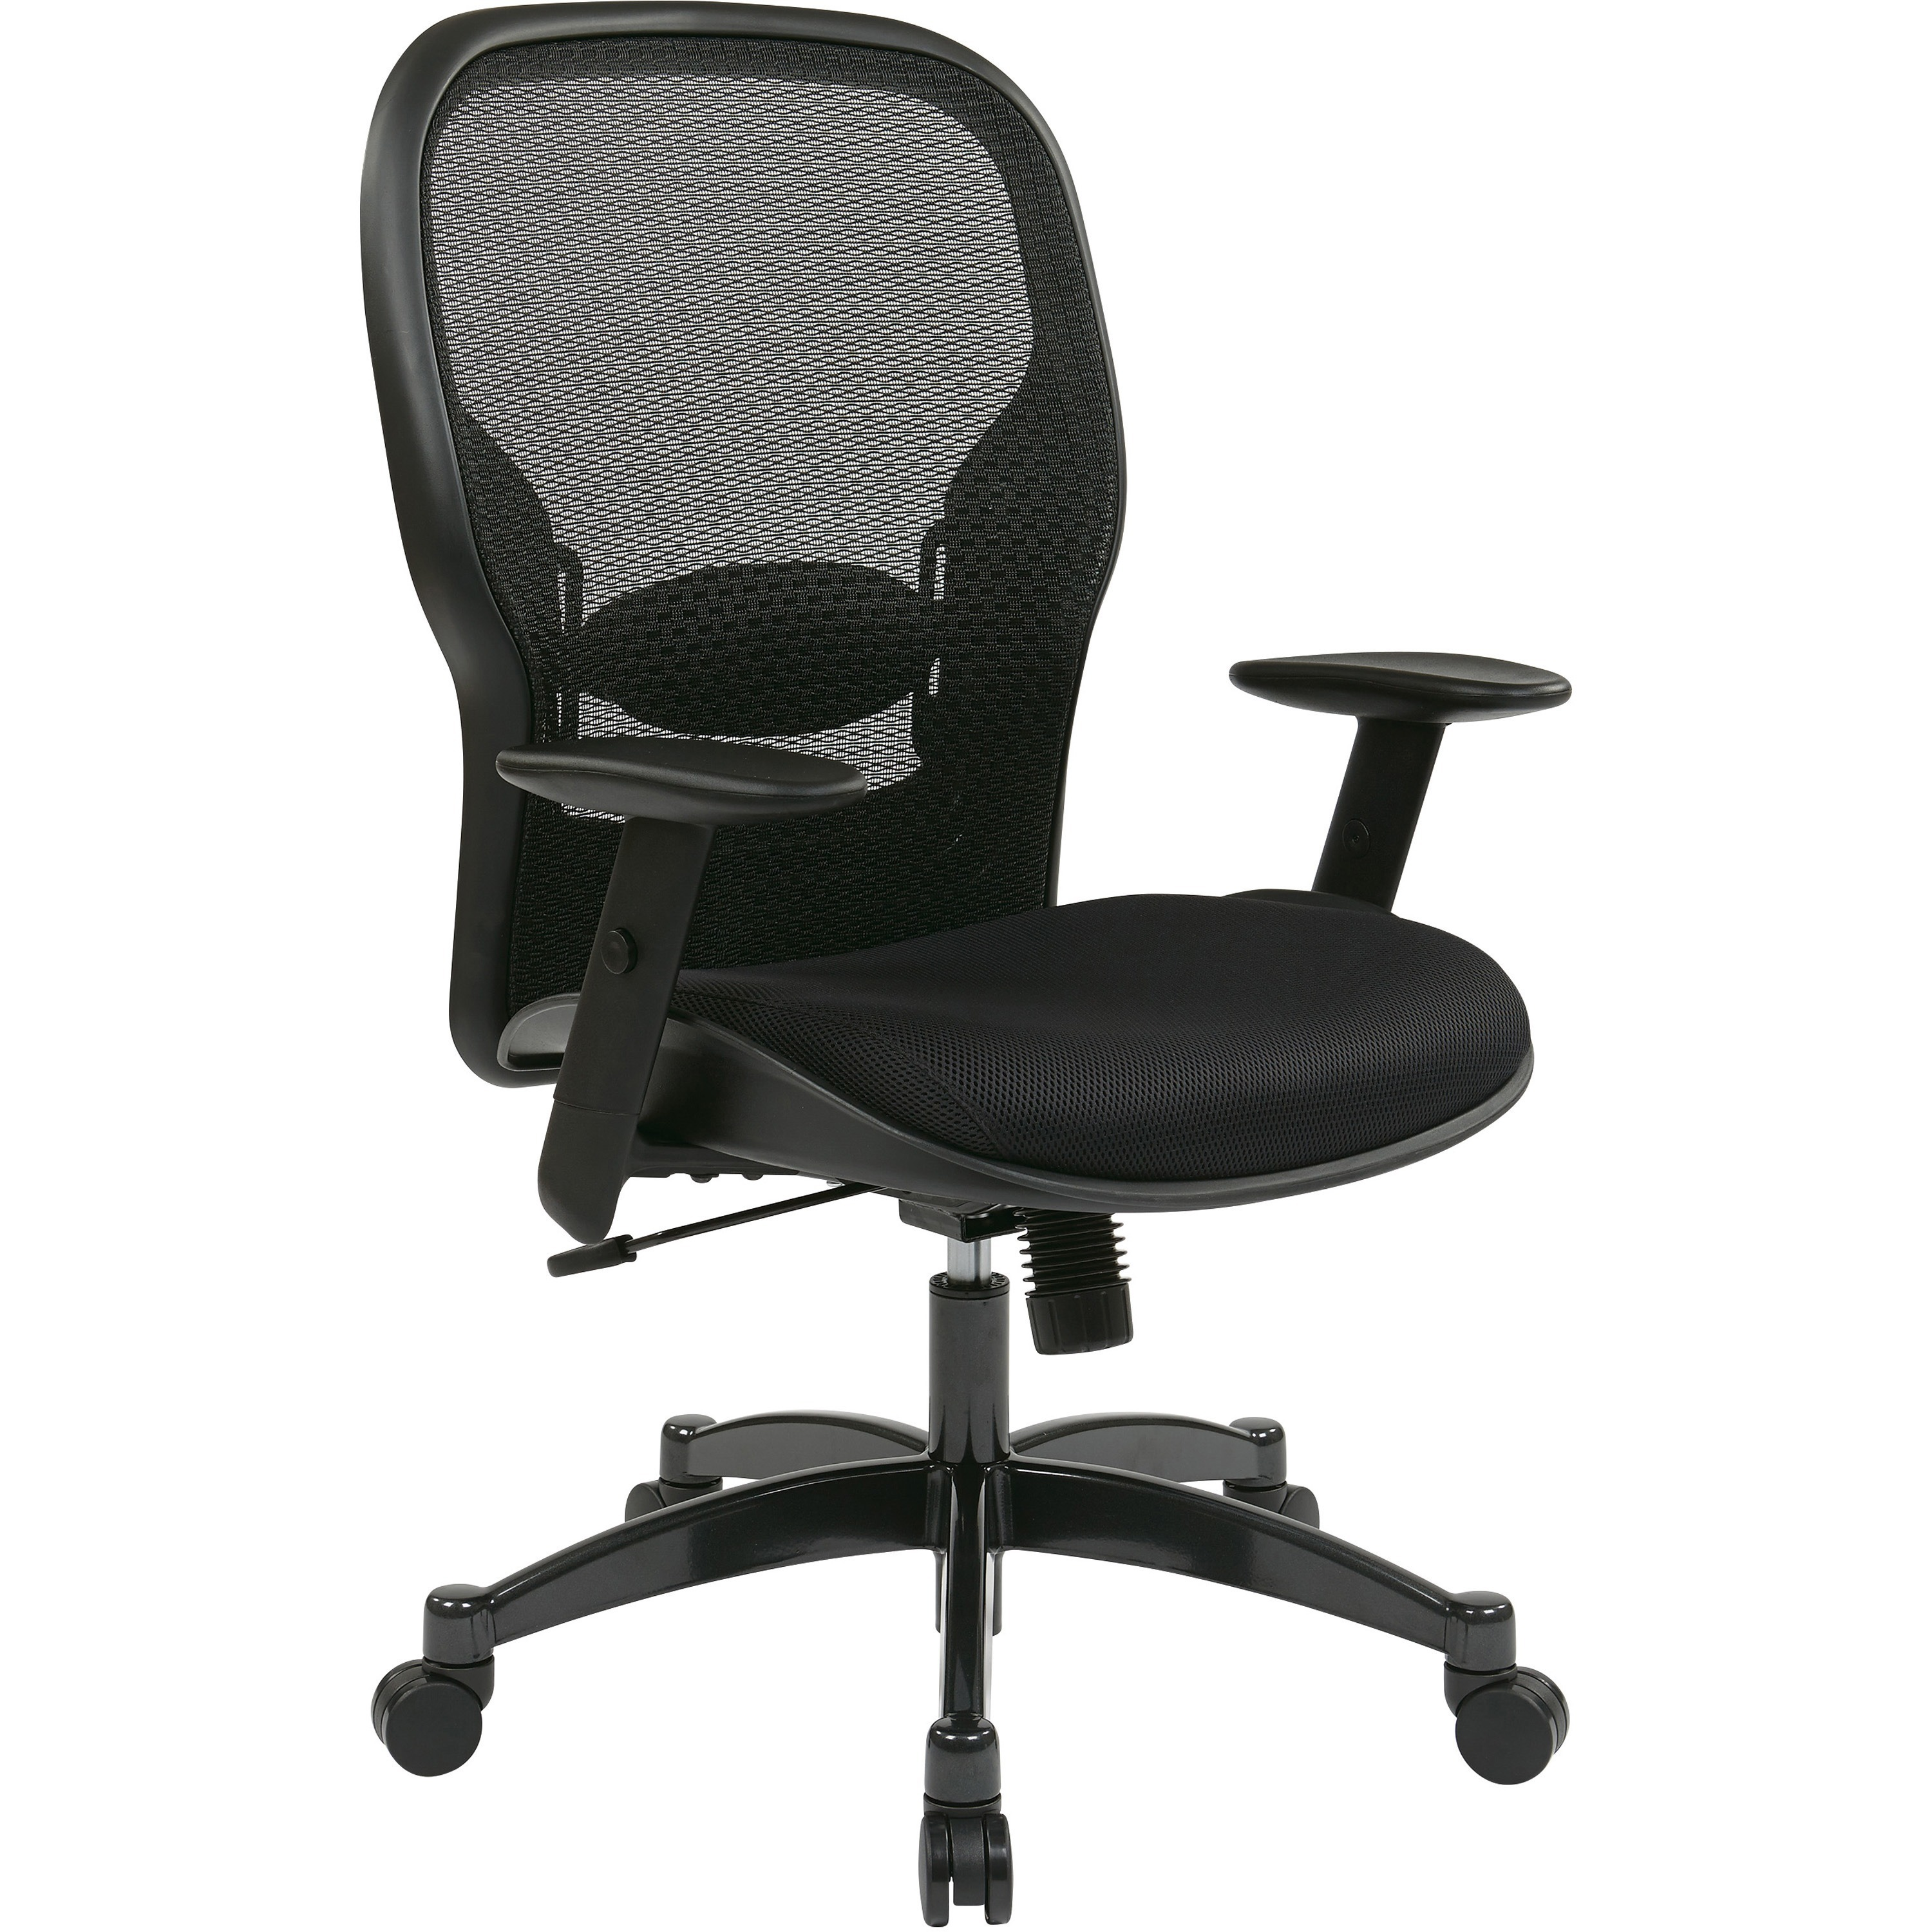 Office Star, OSP2300, Space 2300 Matrex Managerial Mid-Back Mesh Chair, 1 Each, Black